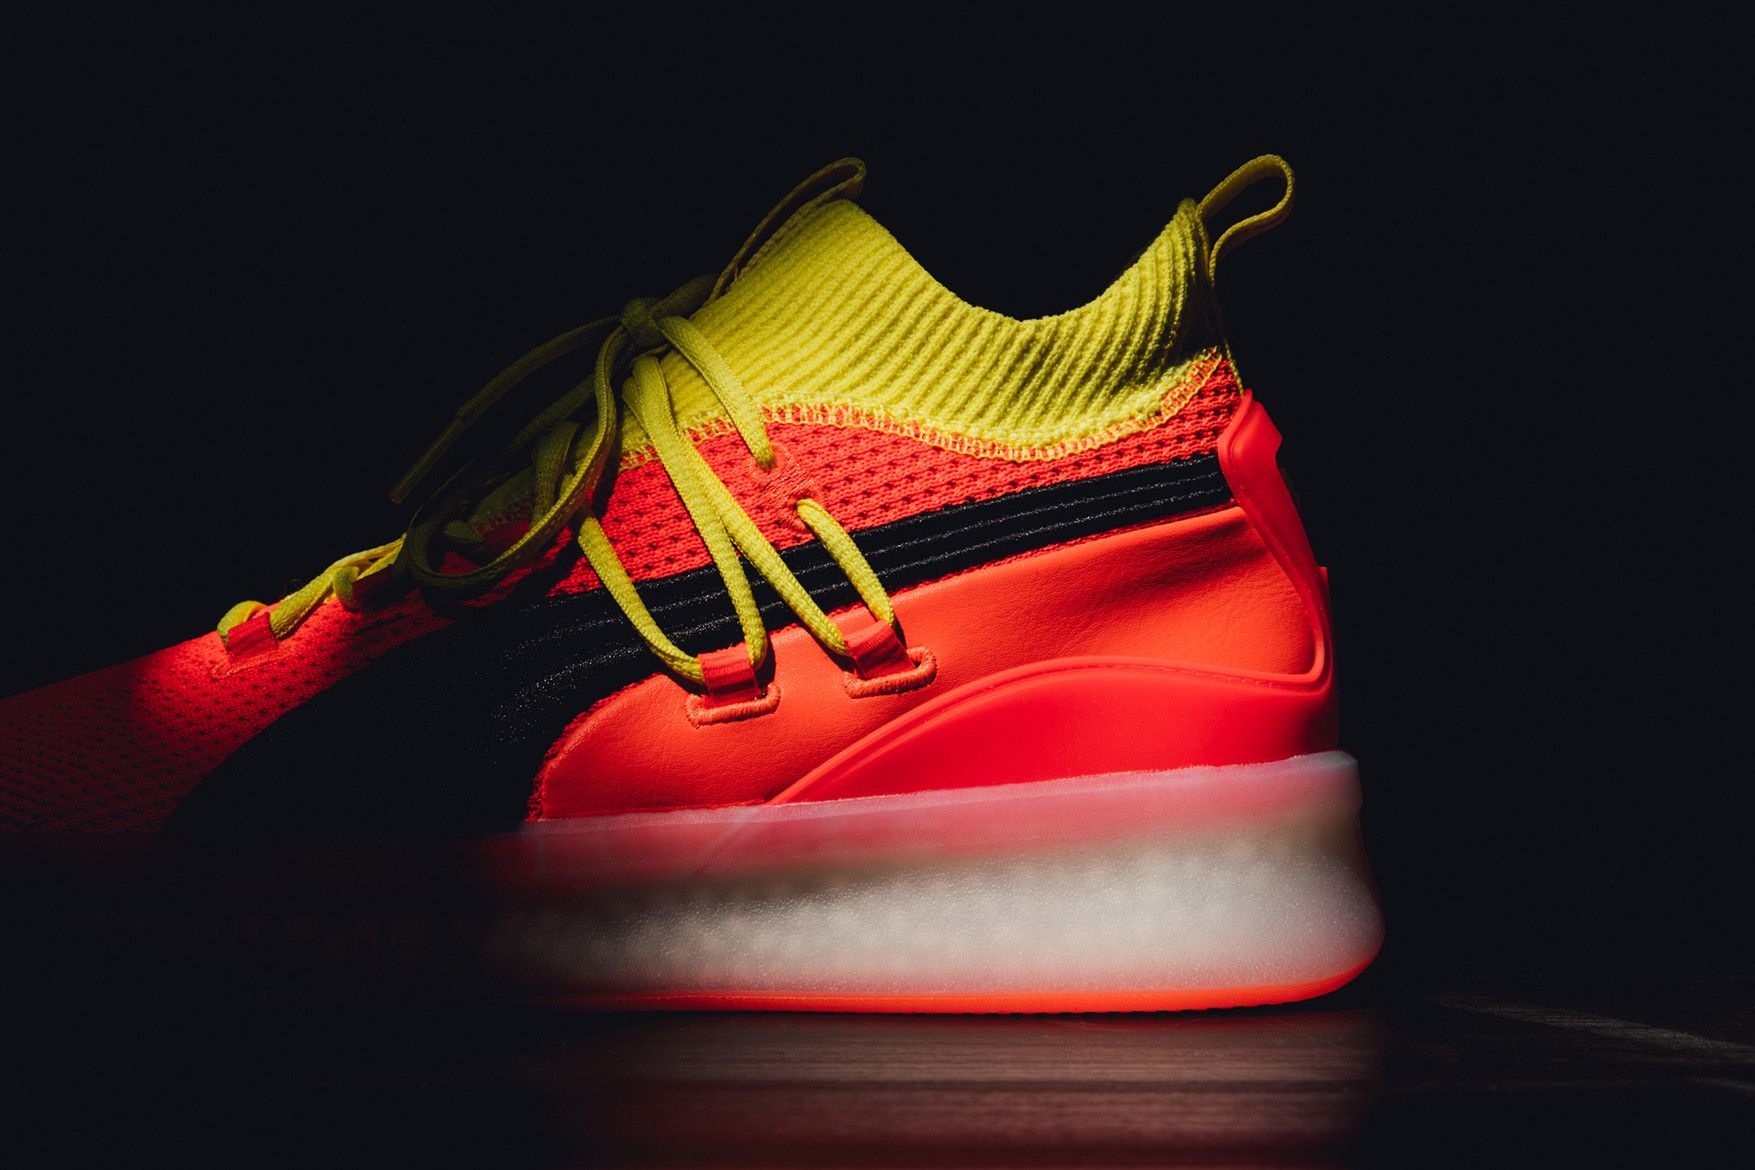 sale retailer 22ce9 76638 puma the clyde court 2018 red orange black yellow german footwear  basketball cupsole fraizer walter jay